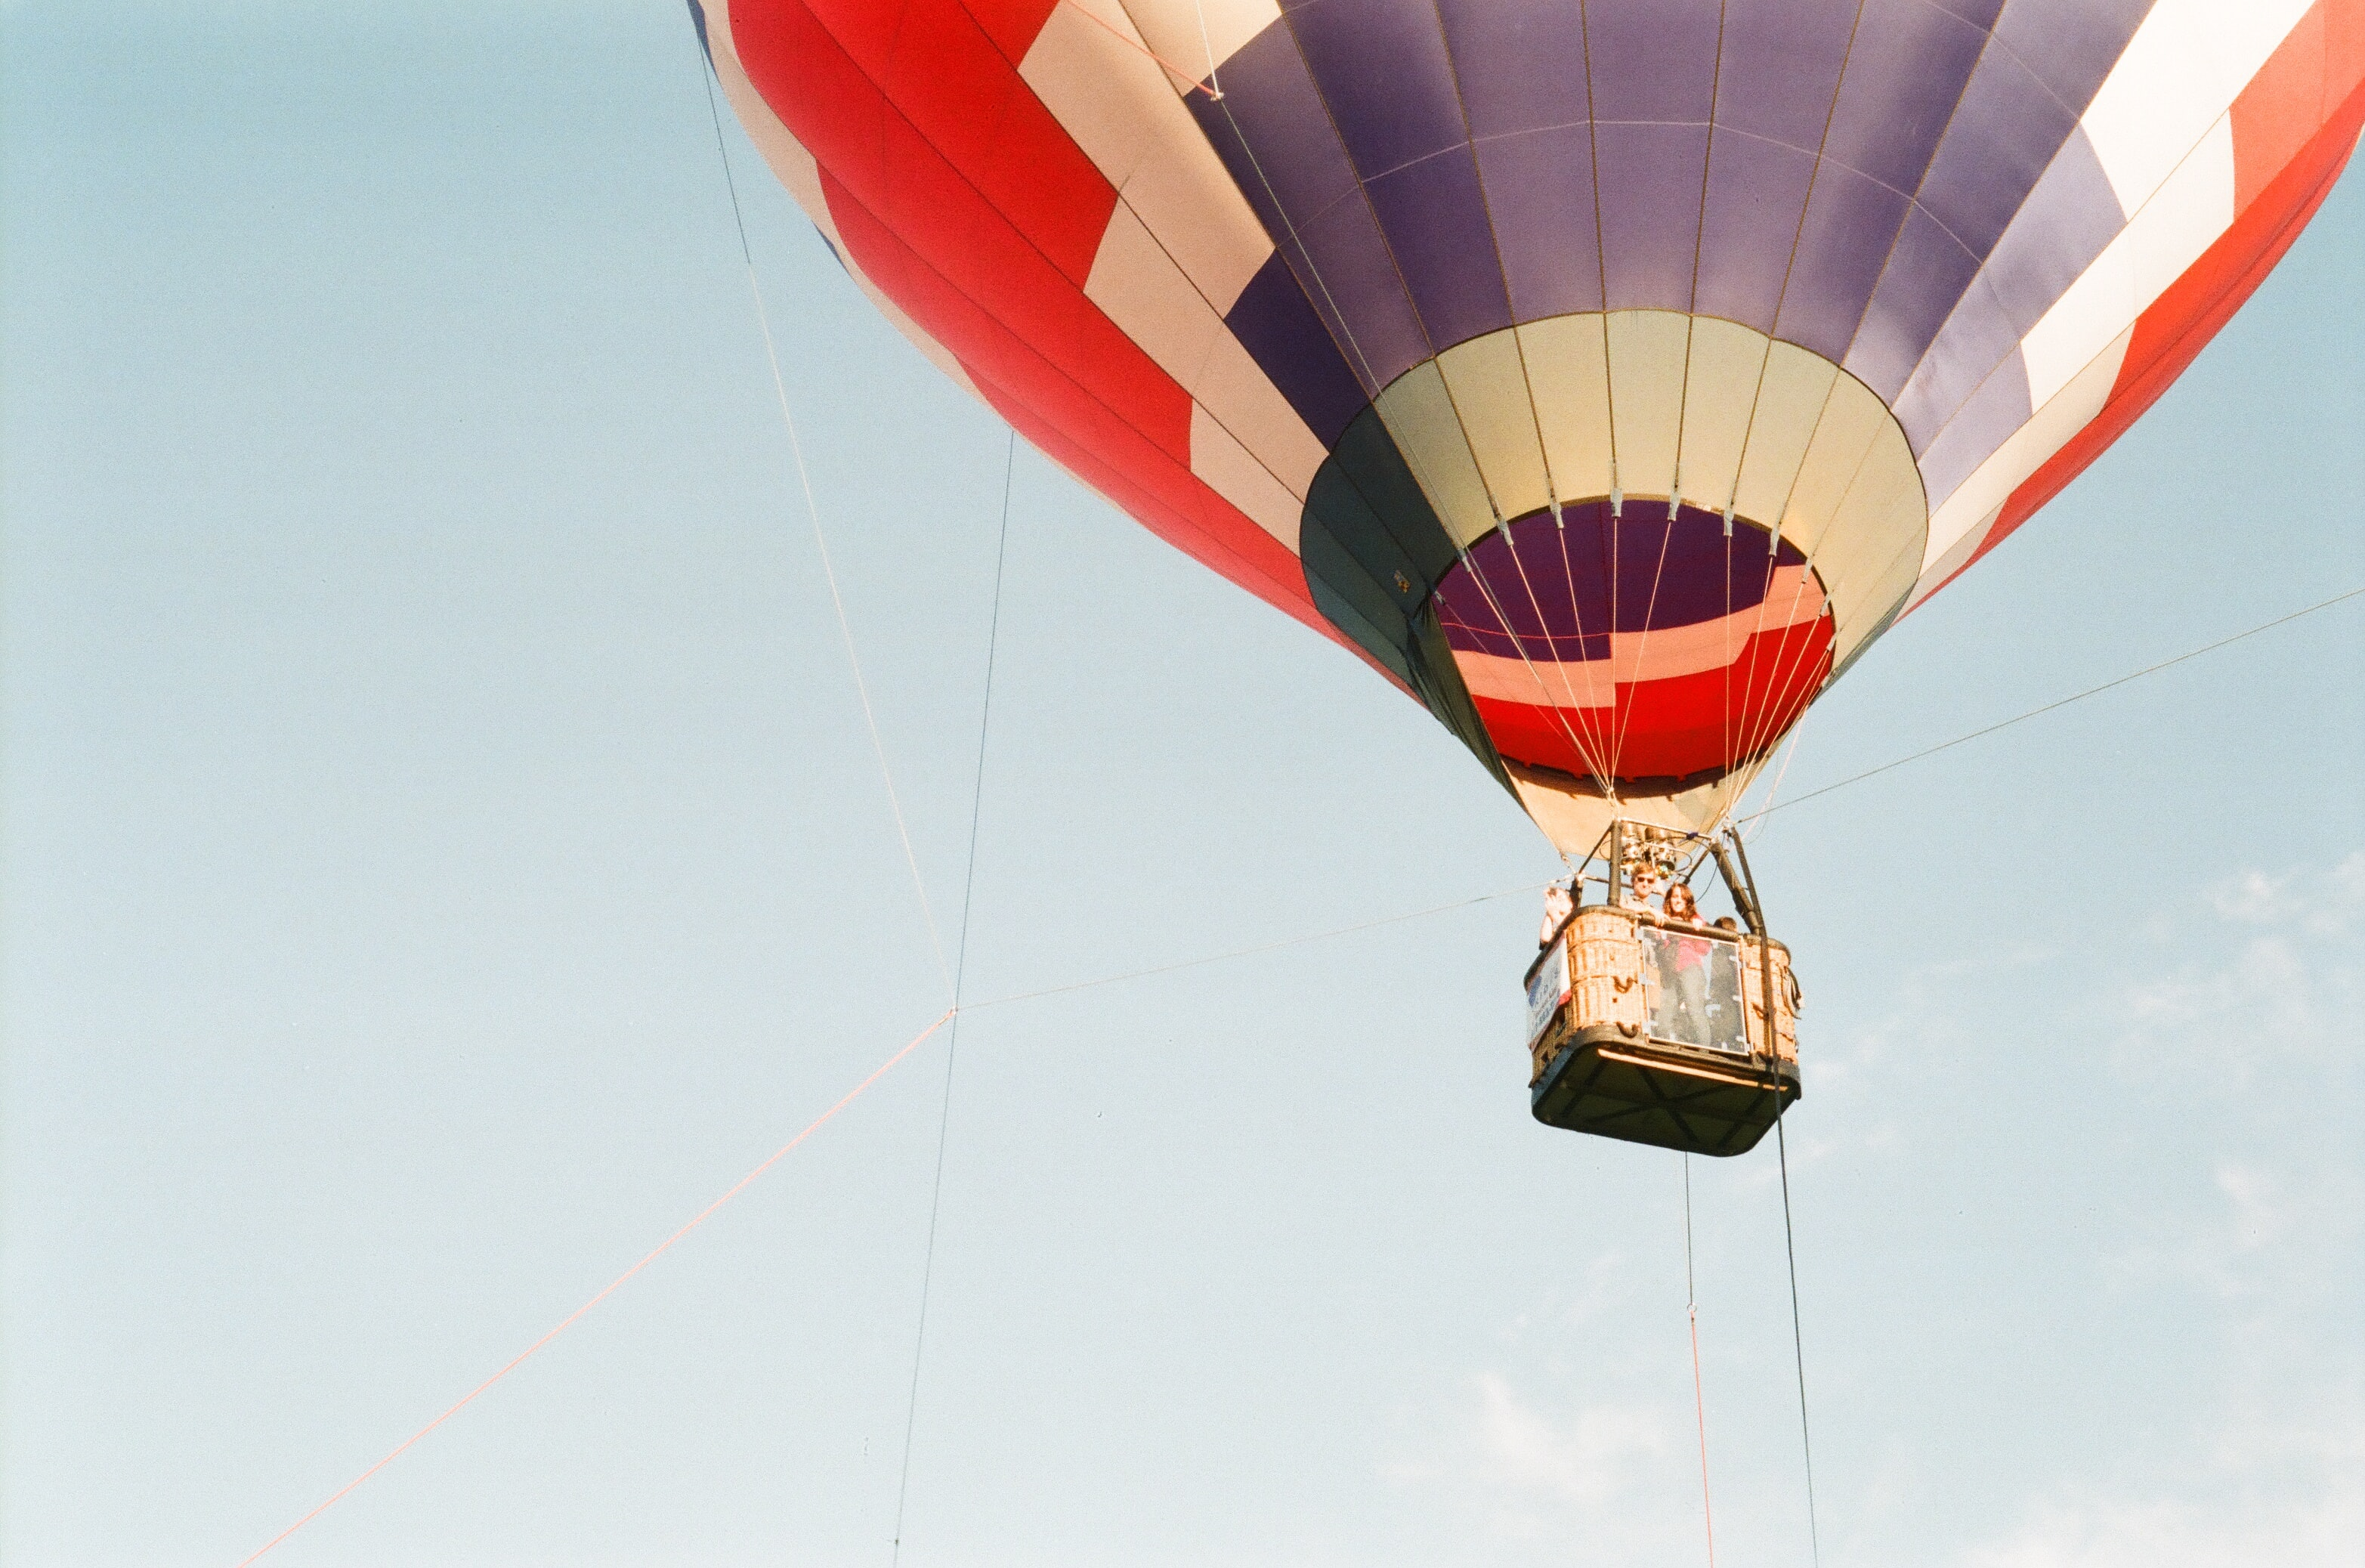 photo of hot air balloon taking flight under clear blue sky